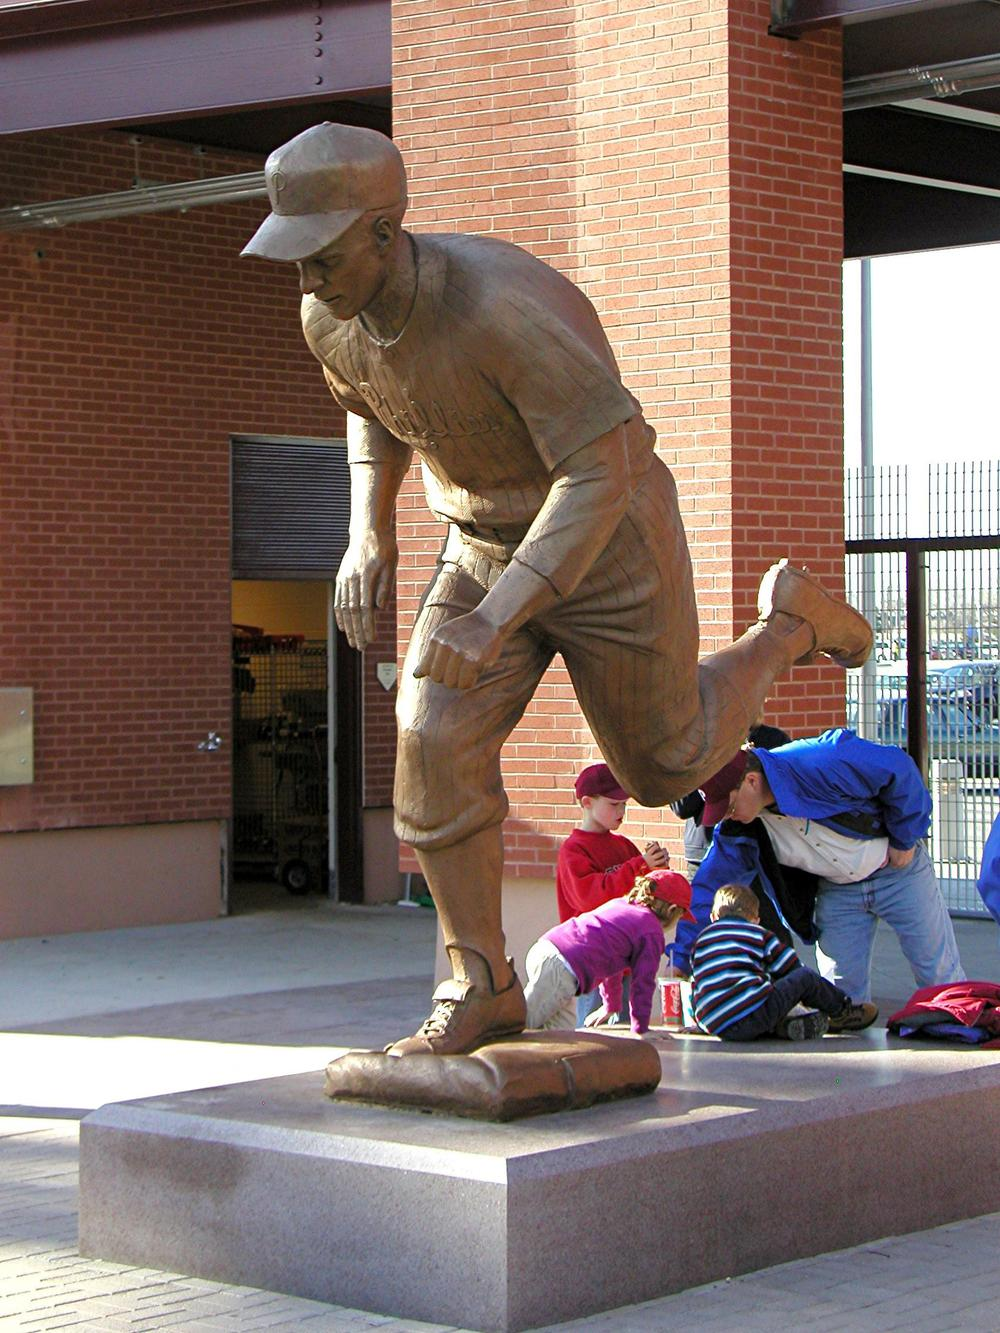 Richie Ashburn, public sculpture